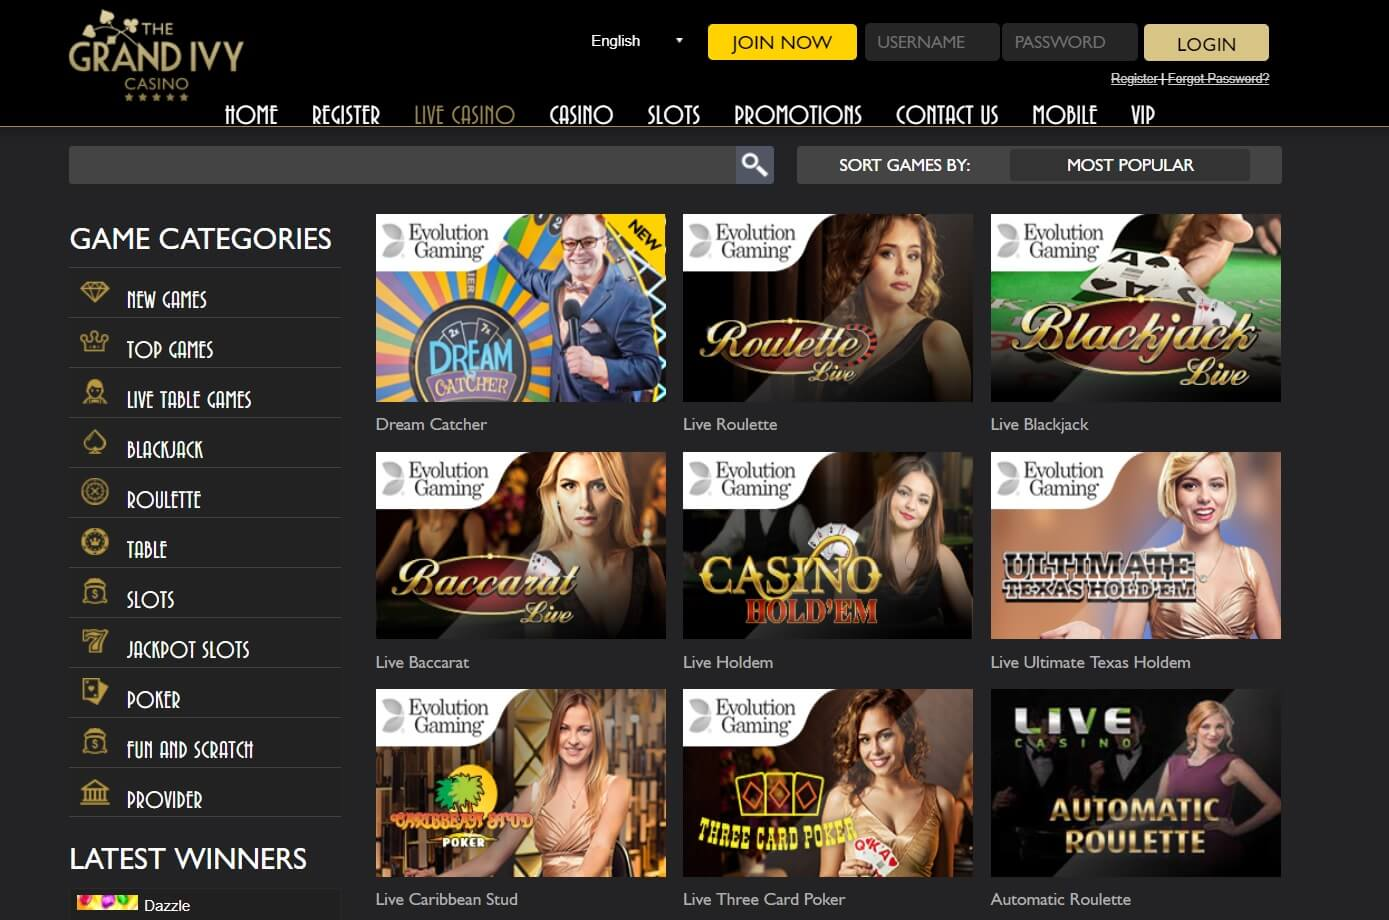 the grand ivy casino review games and live casino games